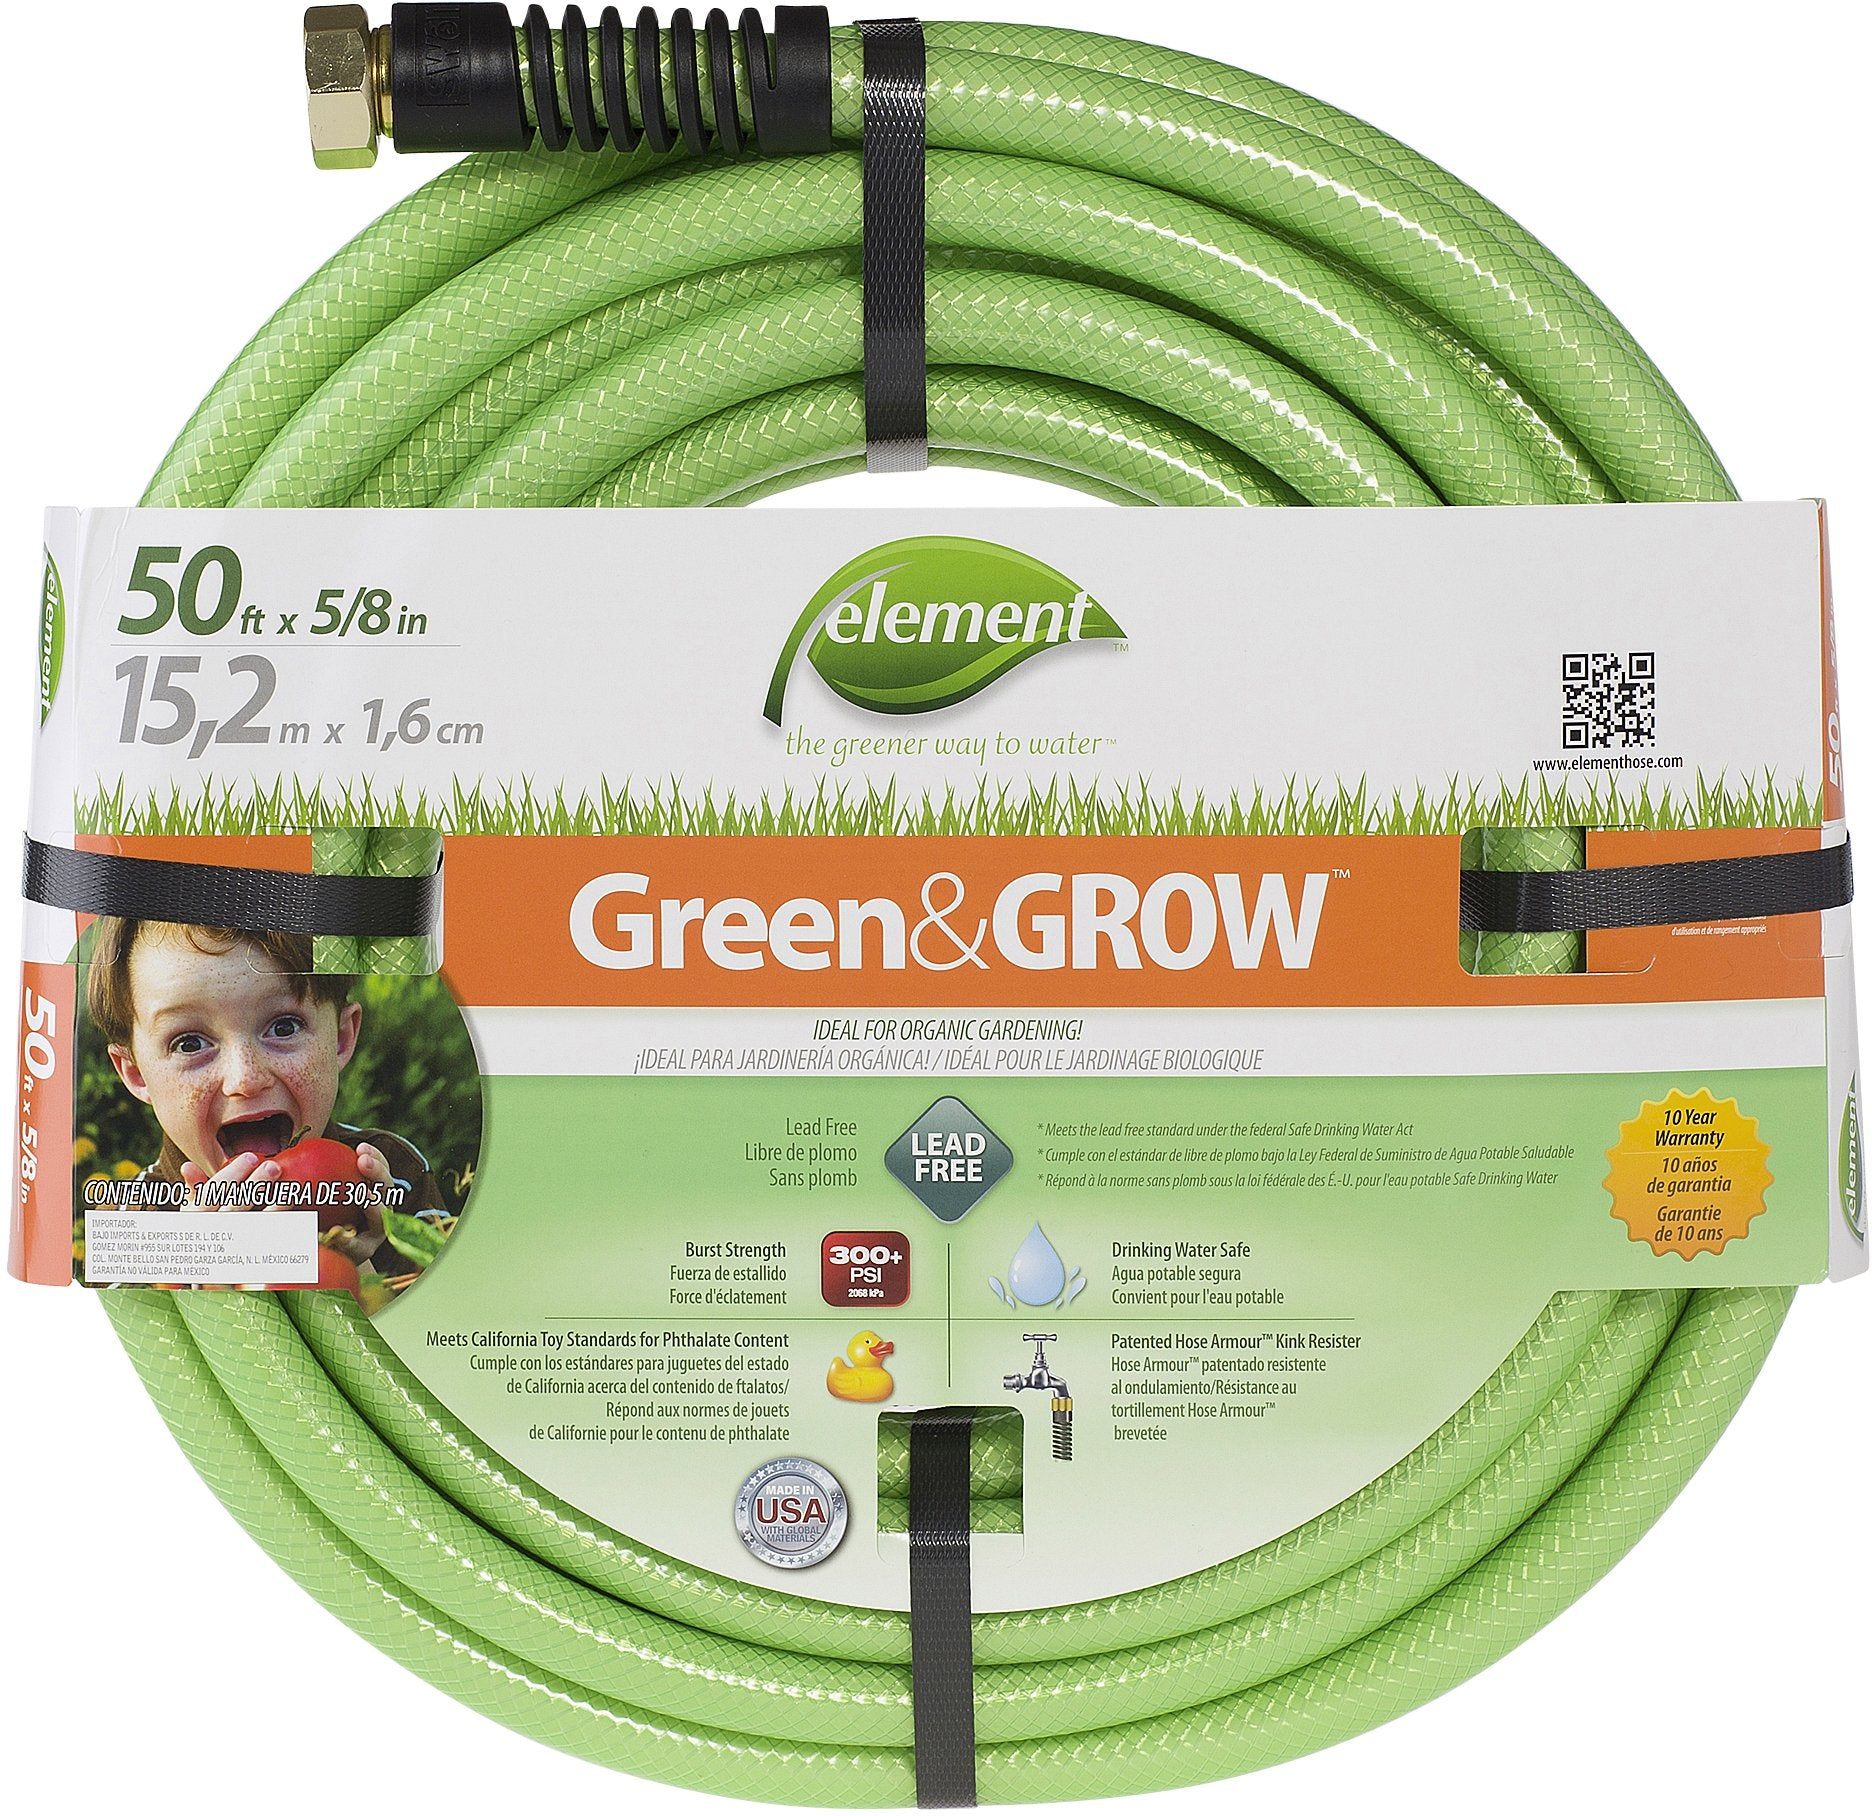 Elements Green & Grow Hose